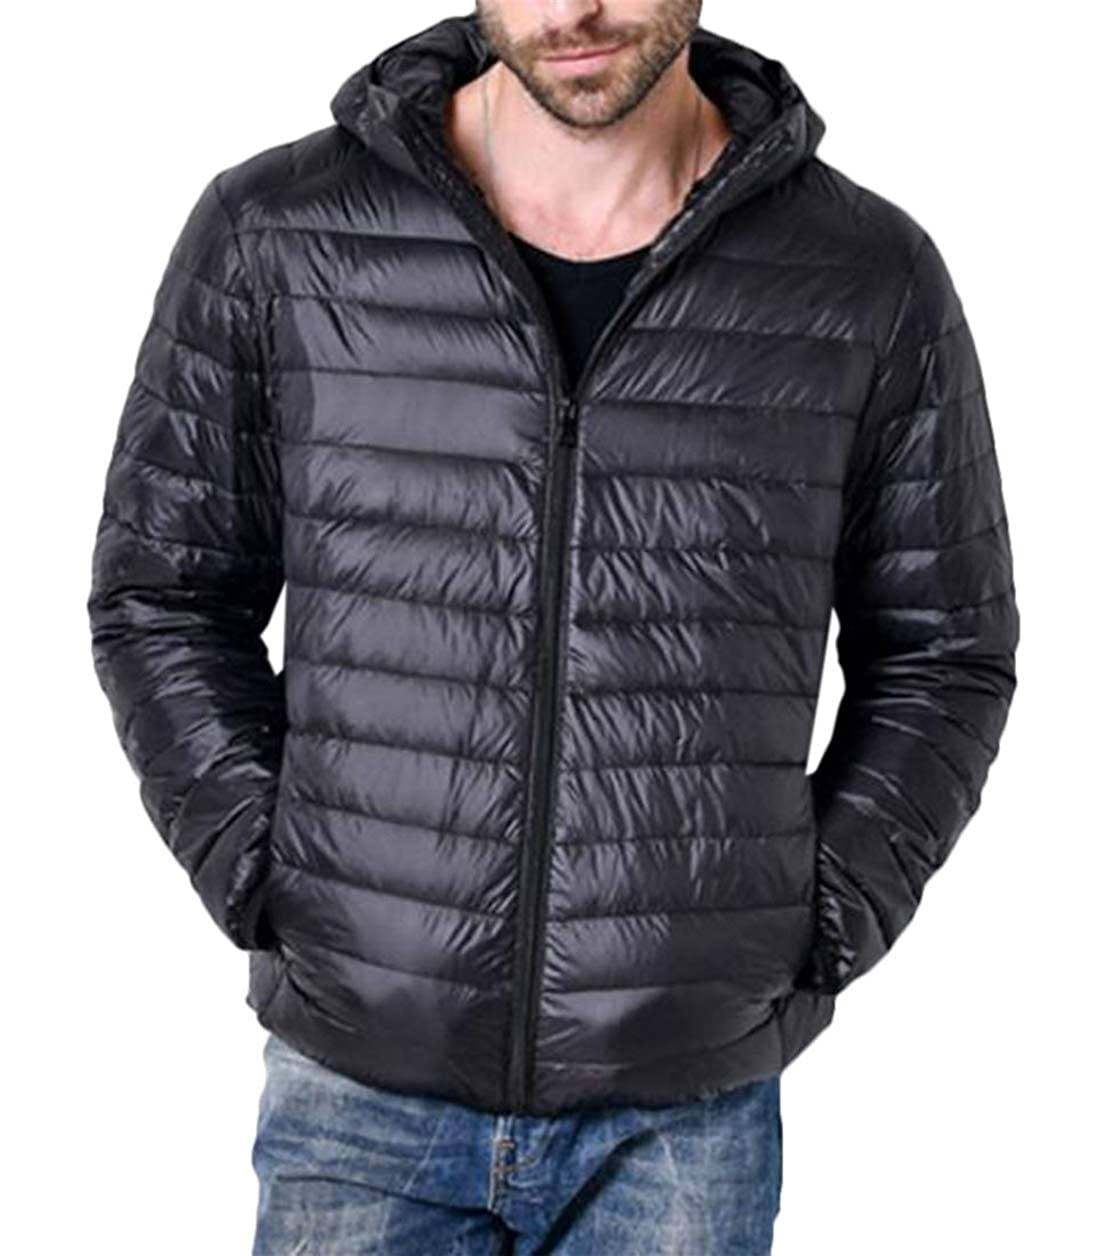 Domple Mens Packable Lightweight Hooded Quilted Casual Solid Color Warm Puffer Jacket Black XL